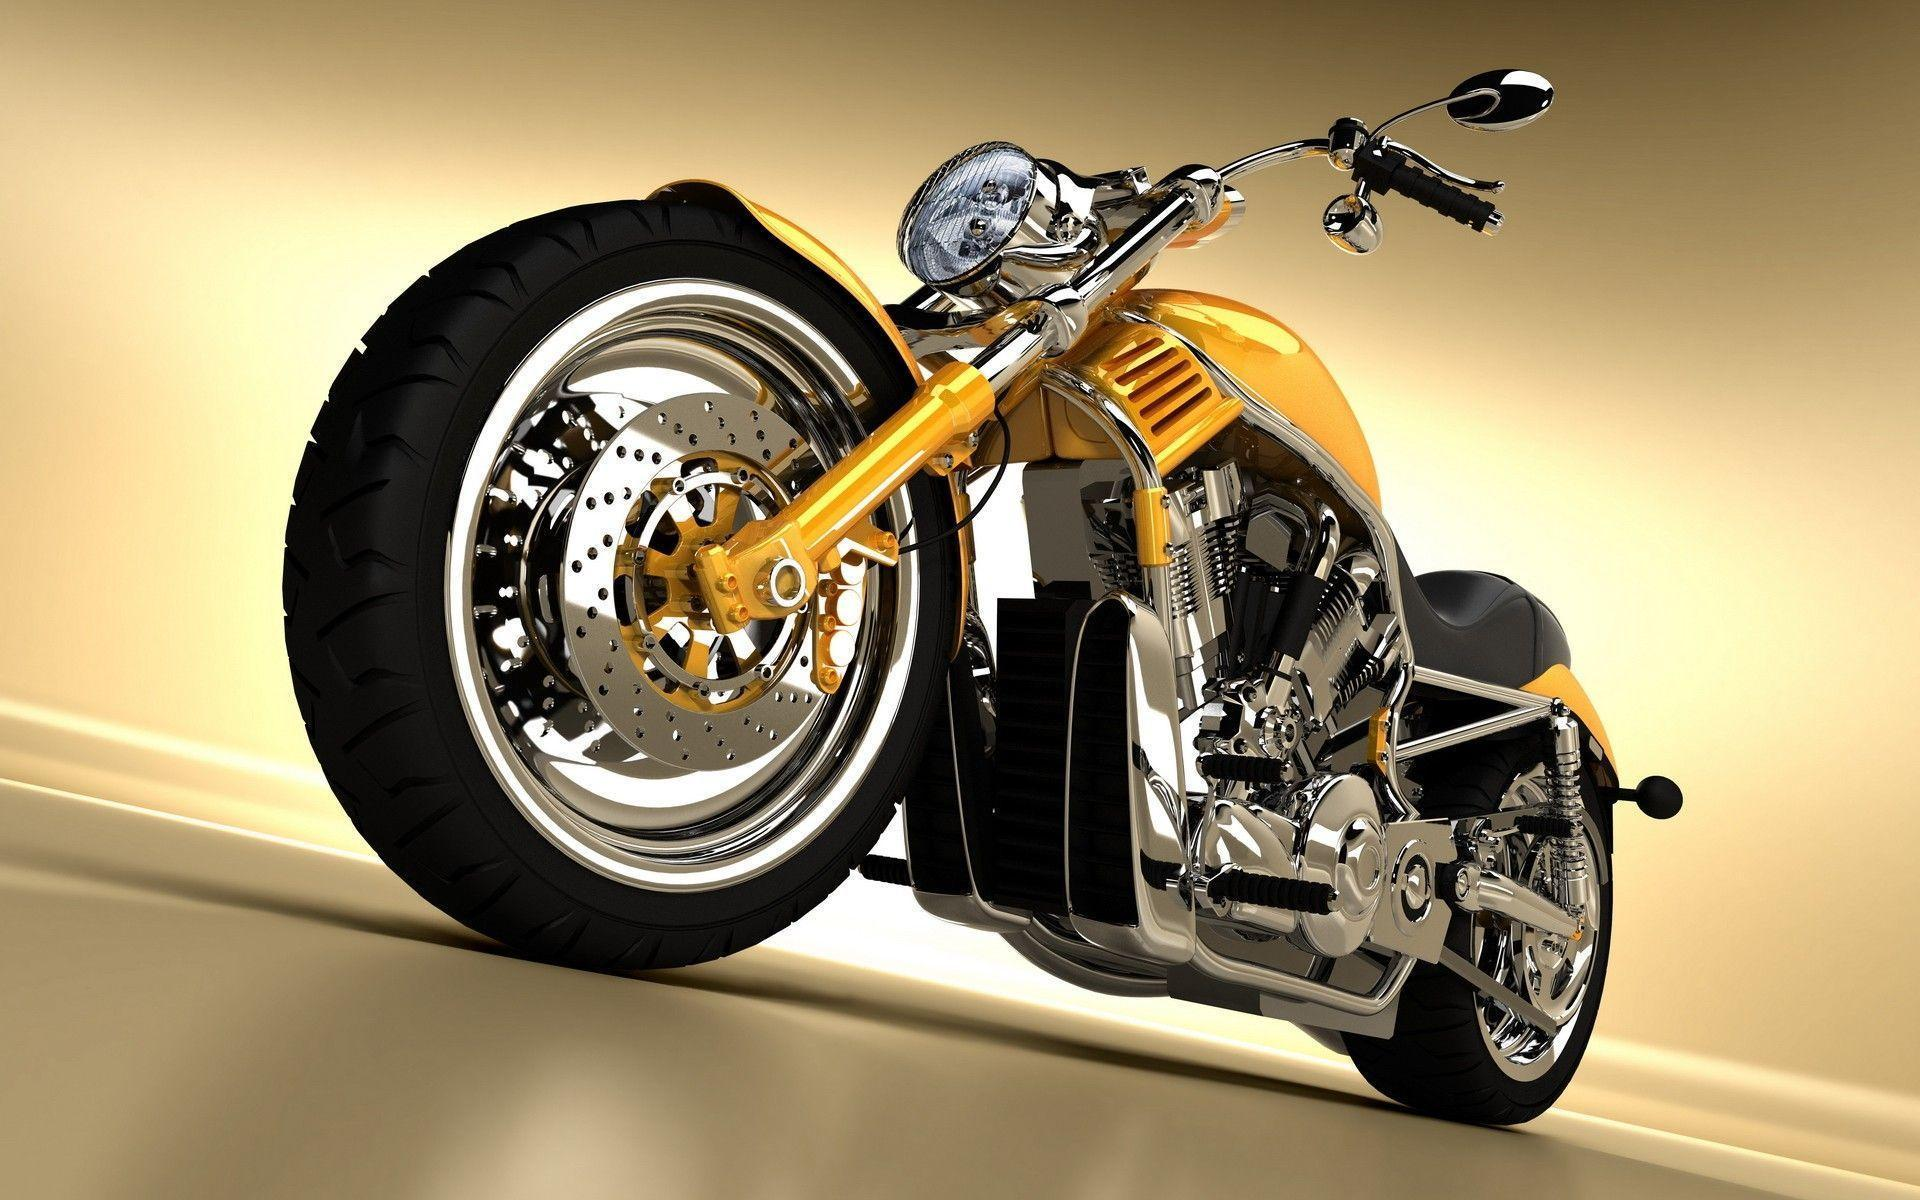 Harley Davidson Xl883 Superlow 1080p HD Wallpapers | HD Wallpapers